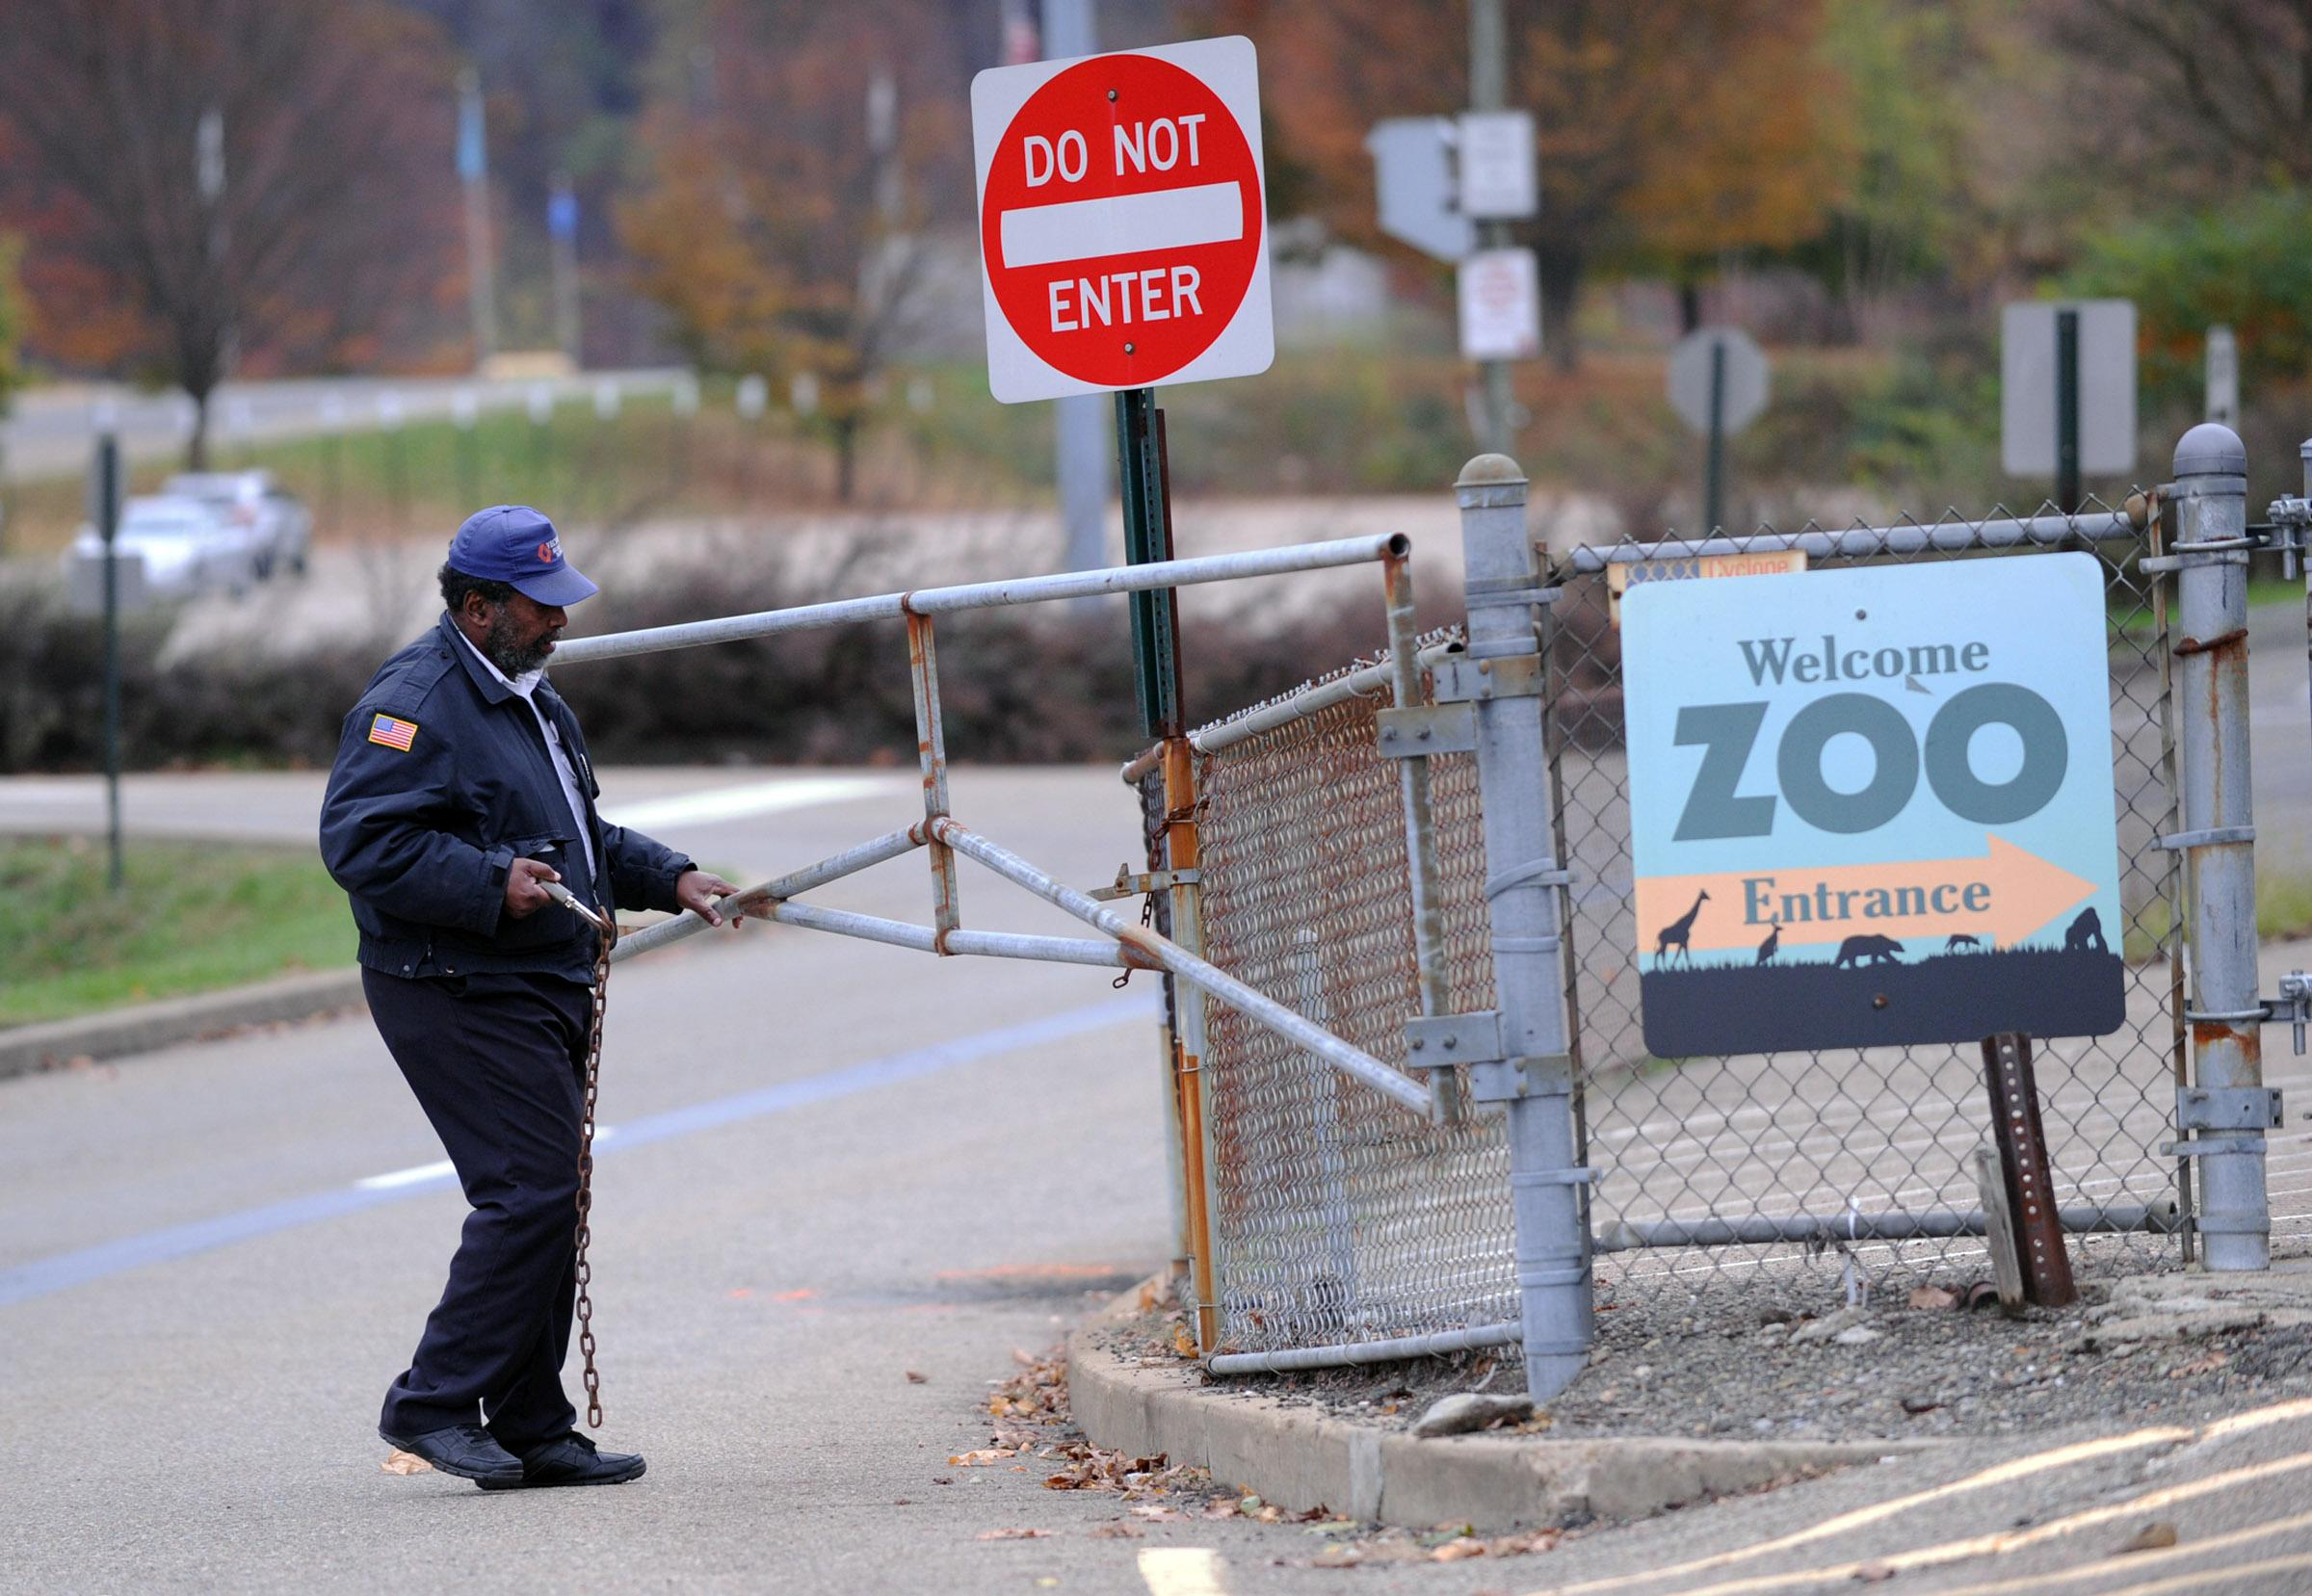 A security guard closes the gate at the Pittsburgh Zoo, where zoo officials say a young boy was killed after he fell into the exhibit that was home to a pack of African painted dogs, who pounced on the boy and mauled him, Sunday, Nov. 4, 2012. It's not clear whether he died from the fall or the attack, said Barbara Baker, president and CEO of the Pittsburgh Zoo & PPG Aquarium. (AP Photo/John Heller)